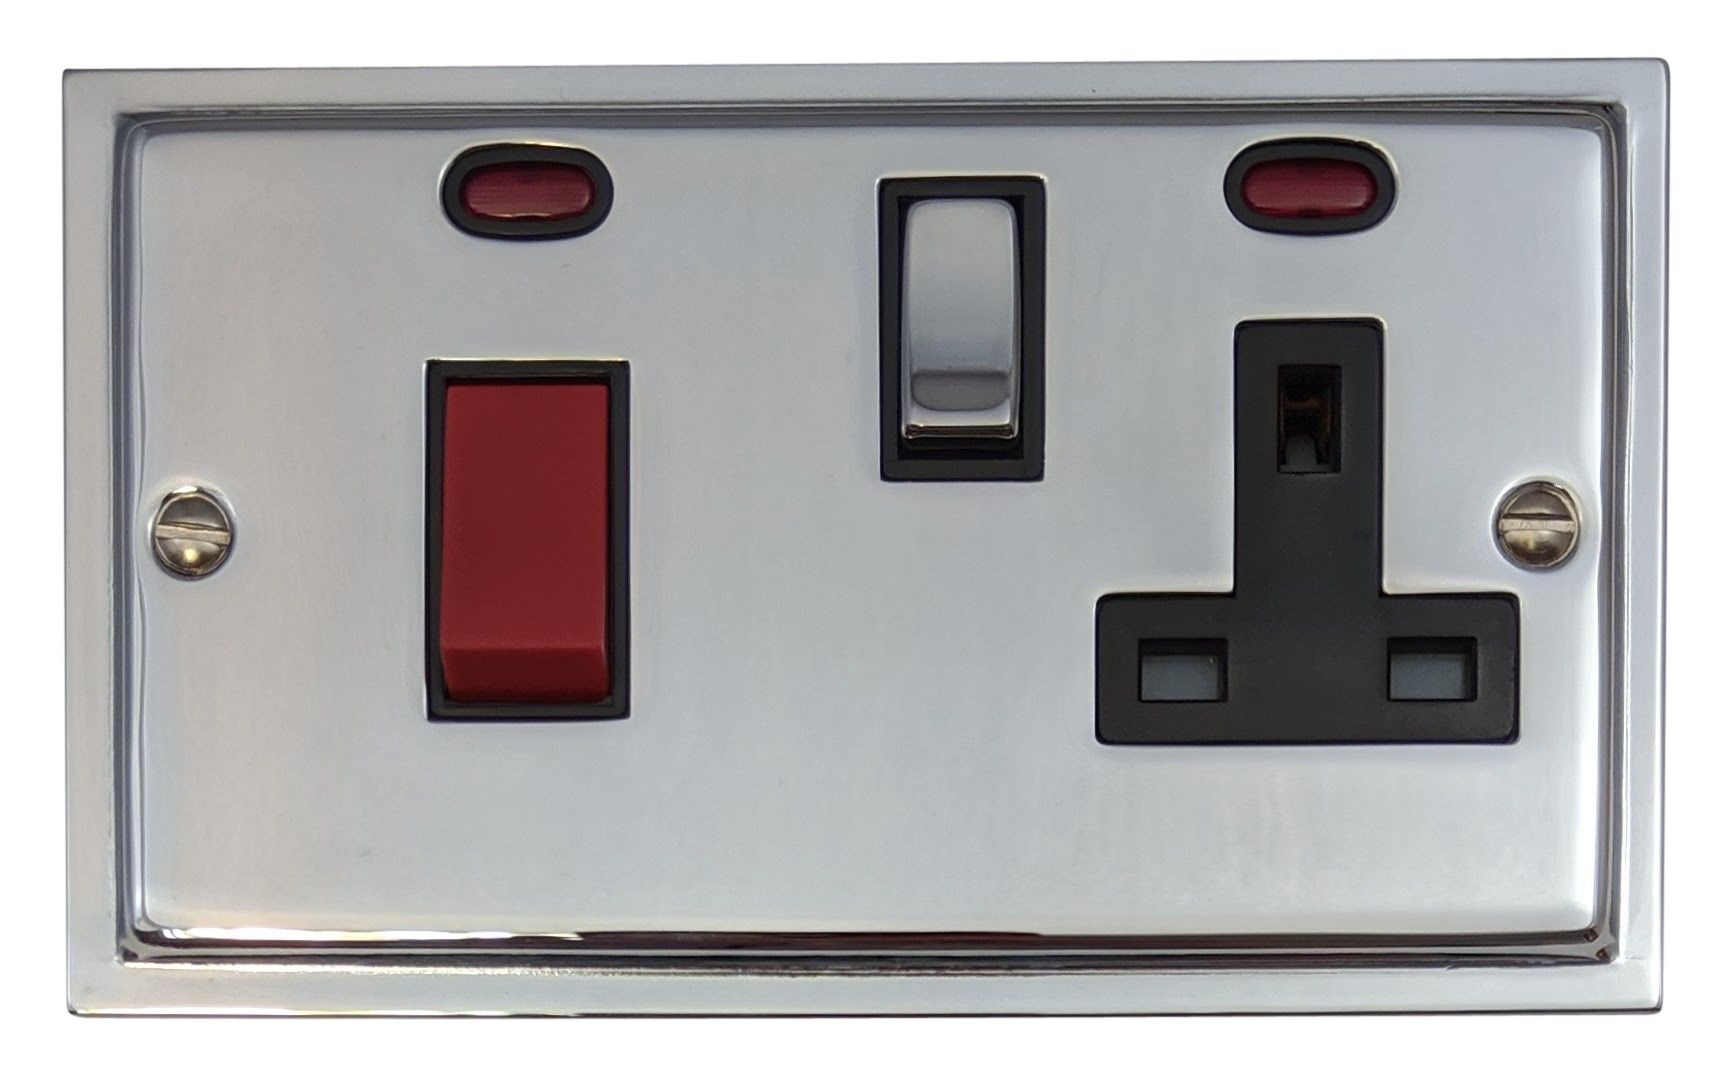 G&H HC329 Highline Plate Polished Chrome 45 Amp DP Cooker Switch & 13A Switched Socket